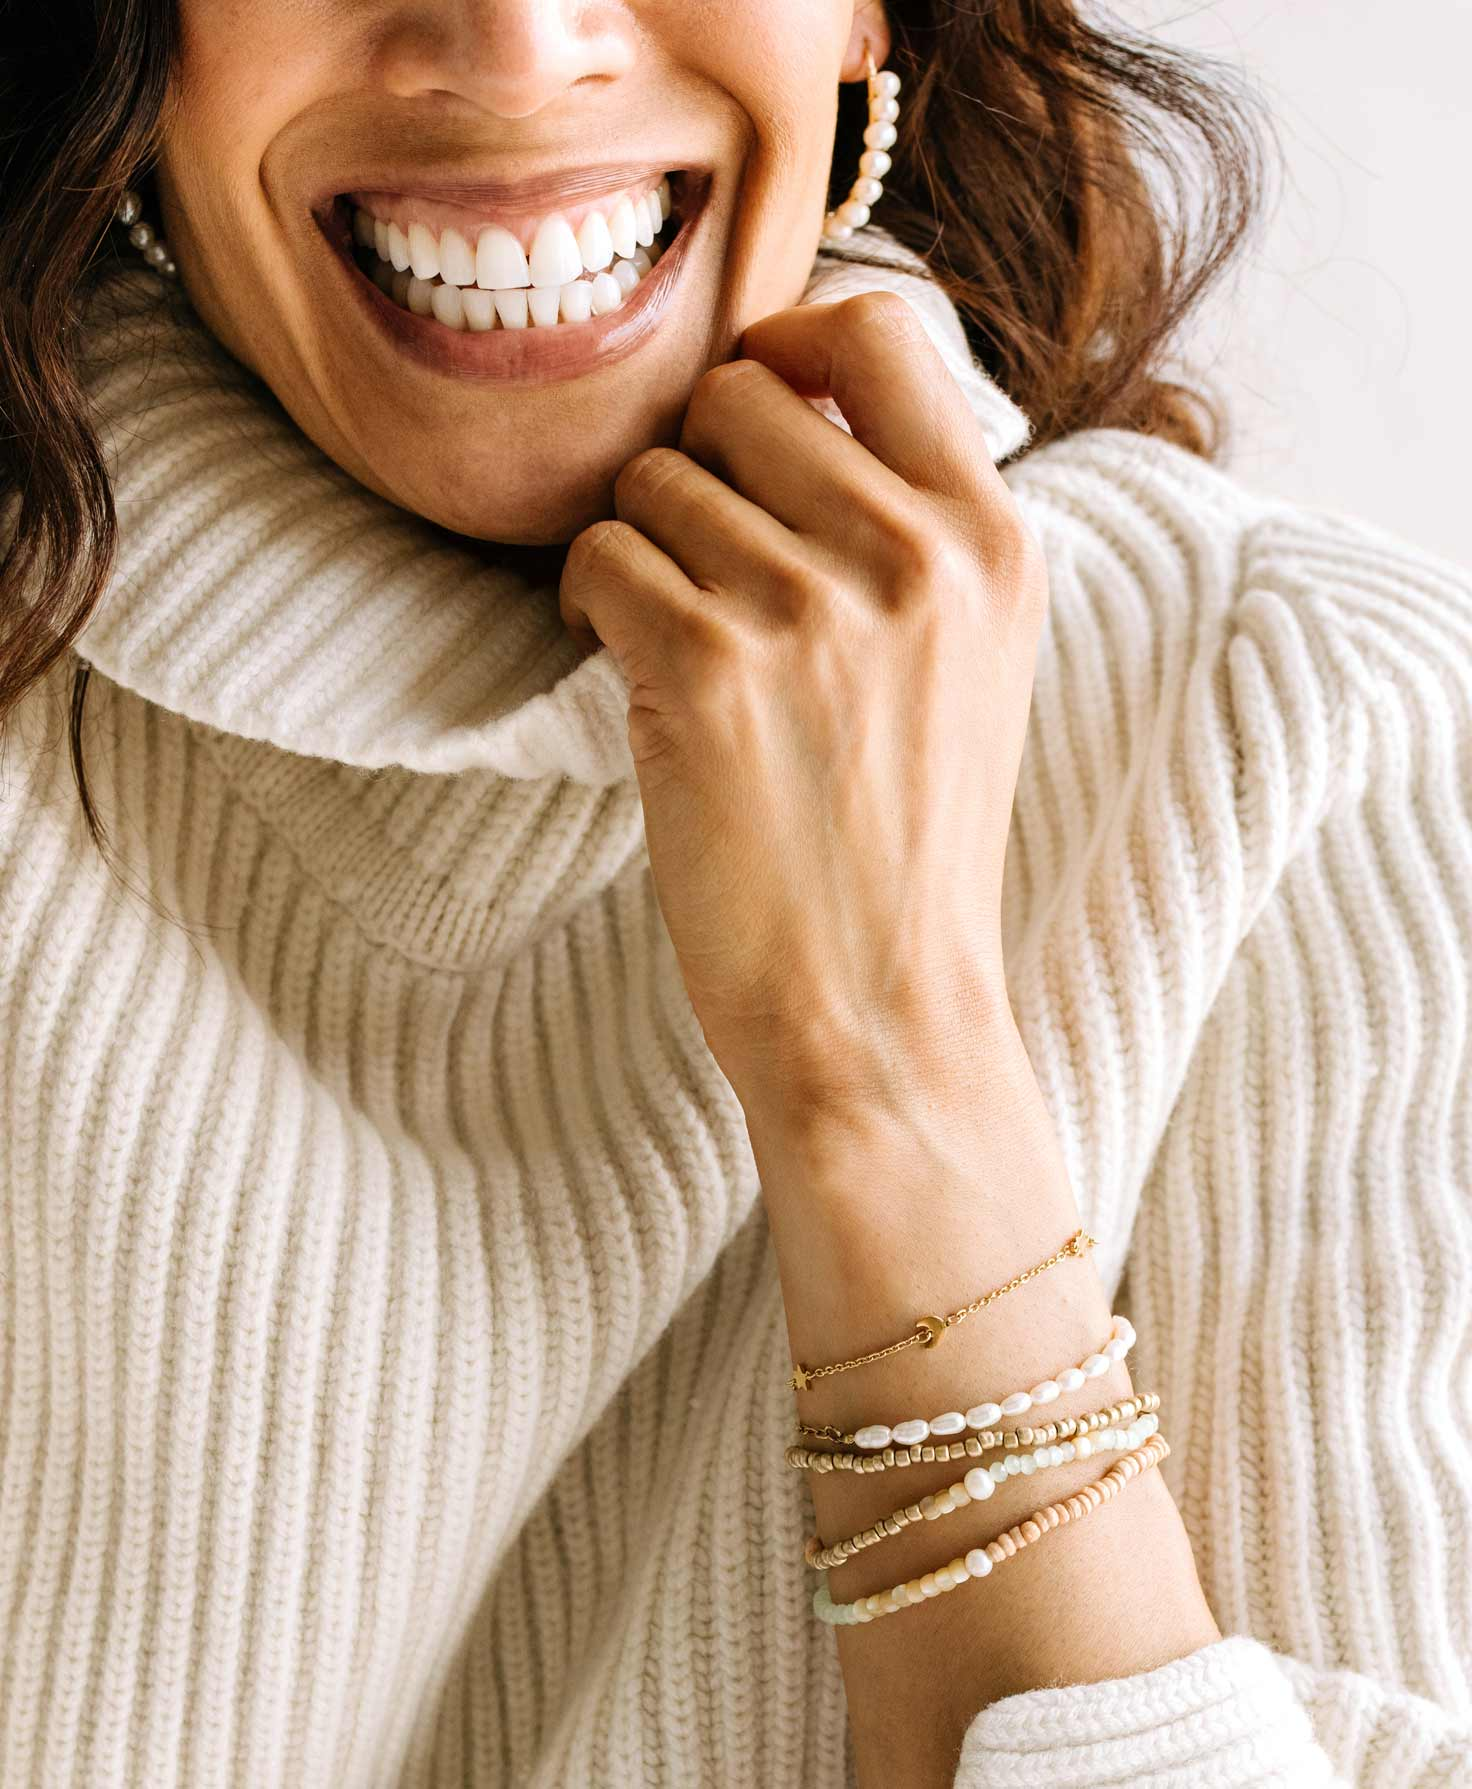 A model wears the By the Sea Bracelet set layered with a stack of other bracelets featuring gold metal and a soft color palette. She finishes her look with the gold and pearl League Earrings.